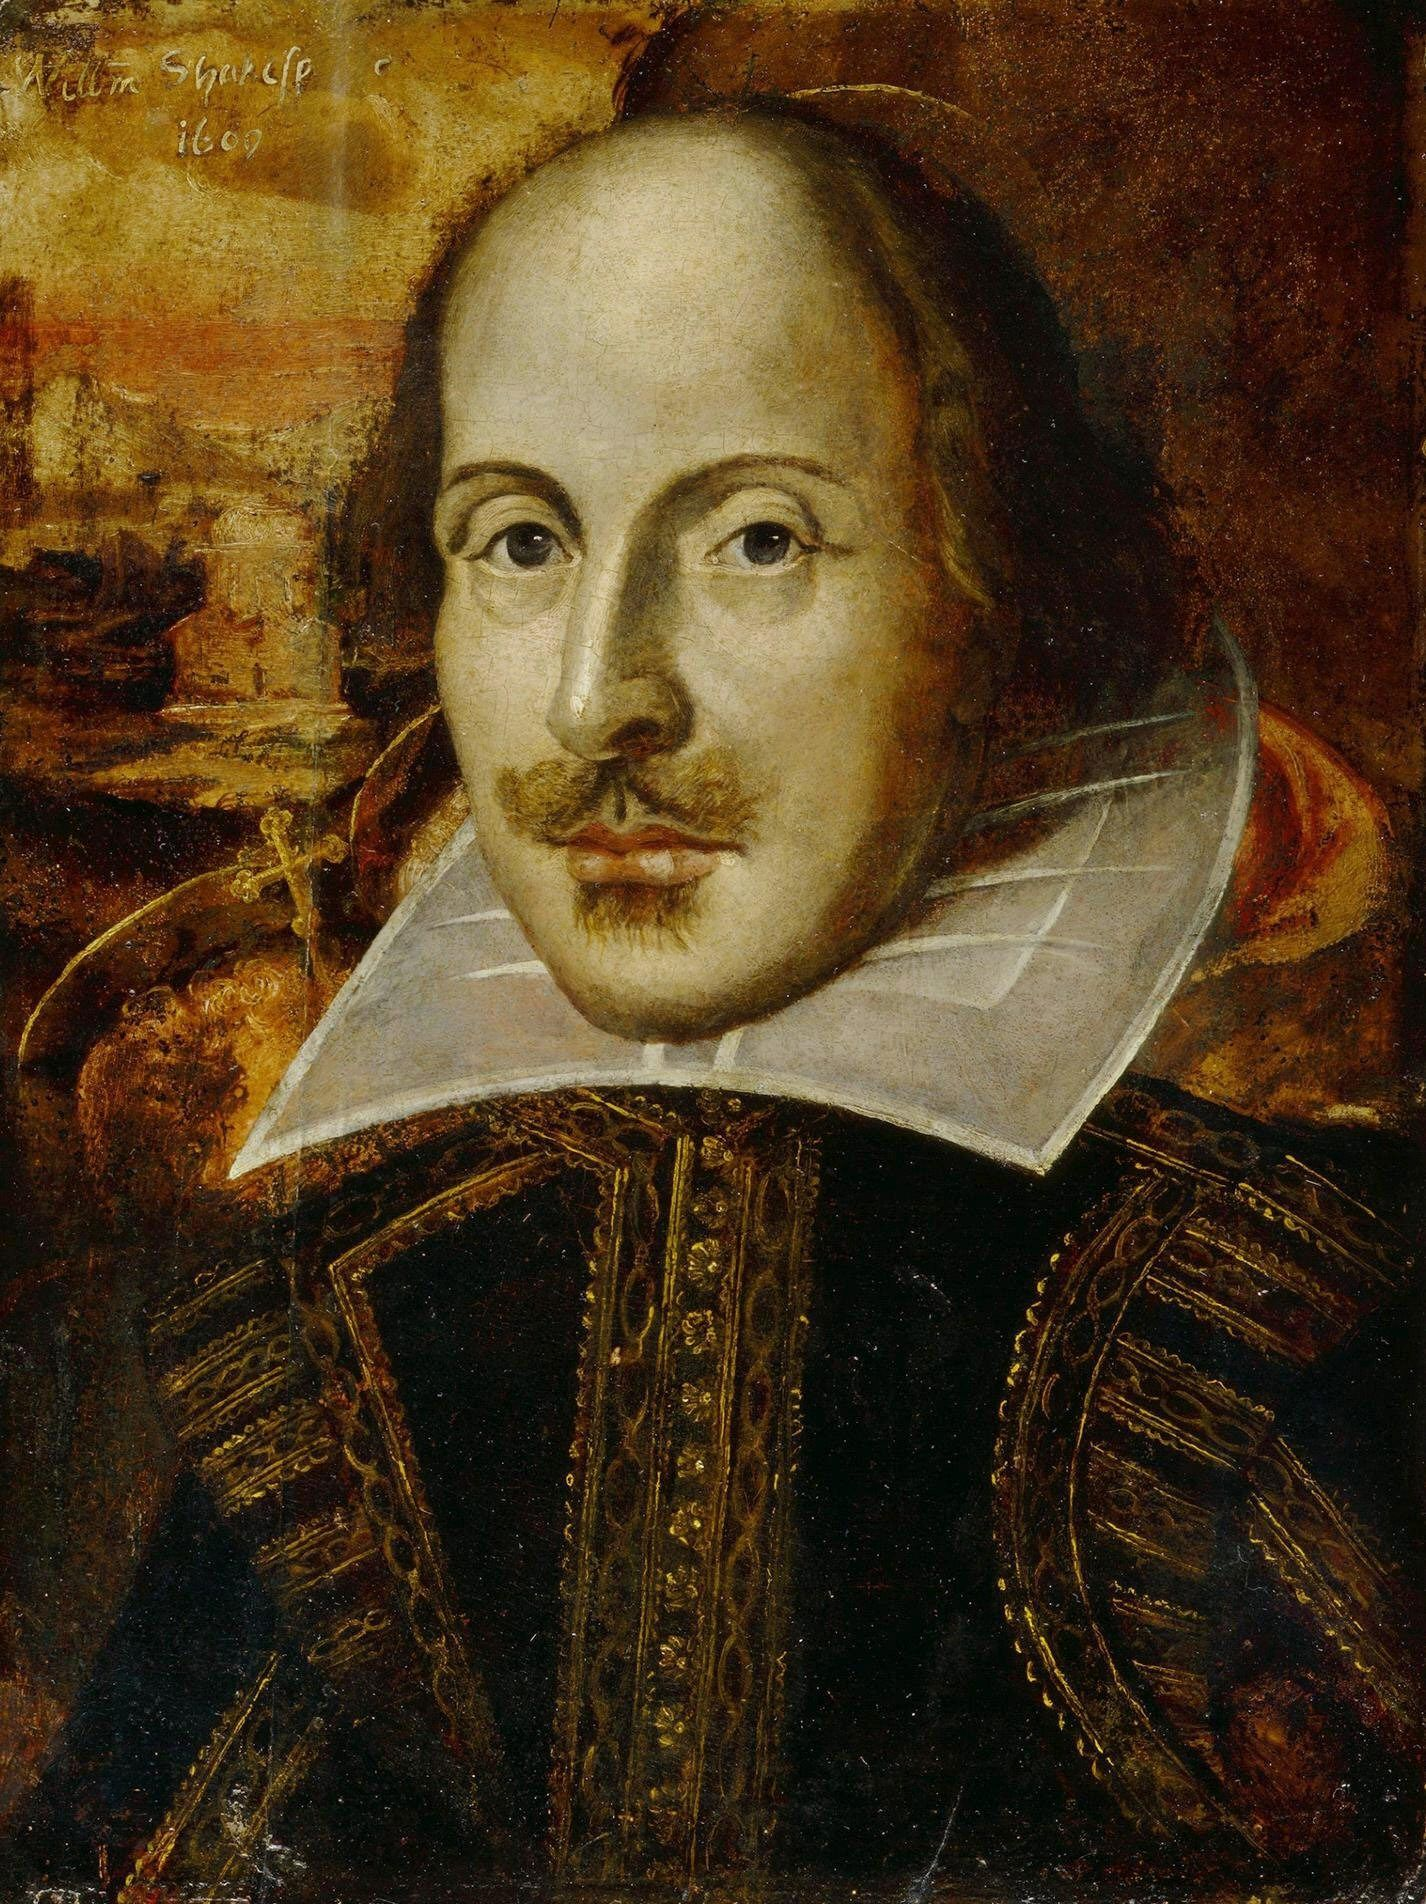 https://upload.wikimedia.org/wikipedia/commons/3/31/William_Shakespeare_1609.jpg